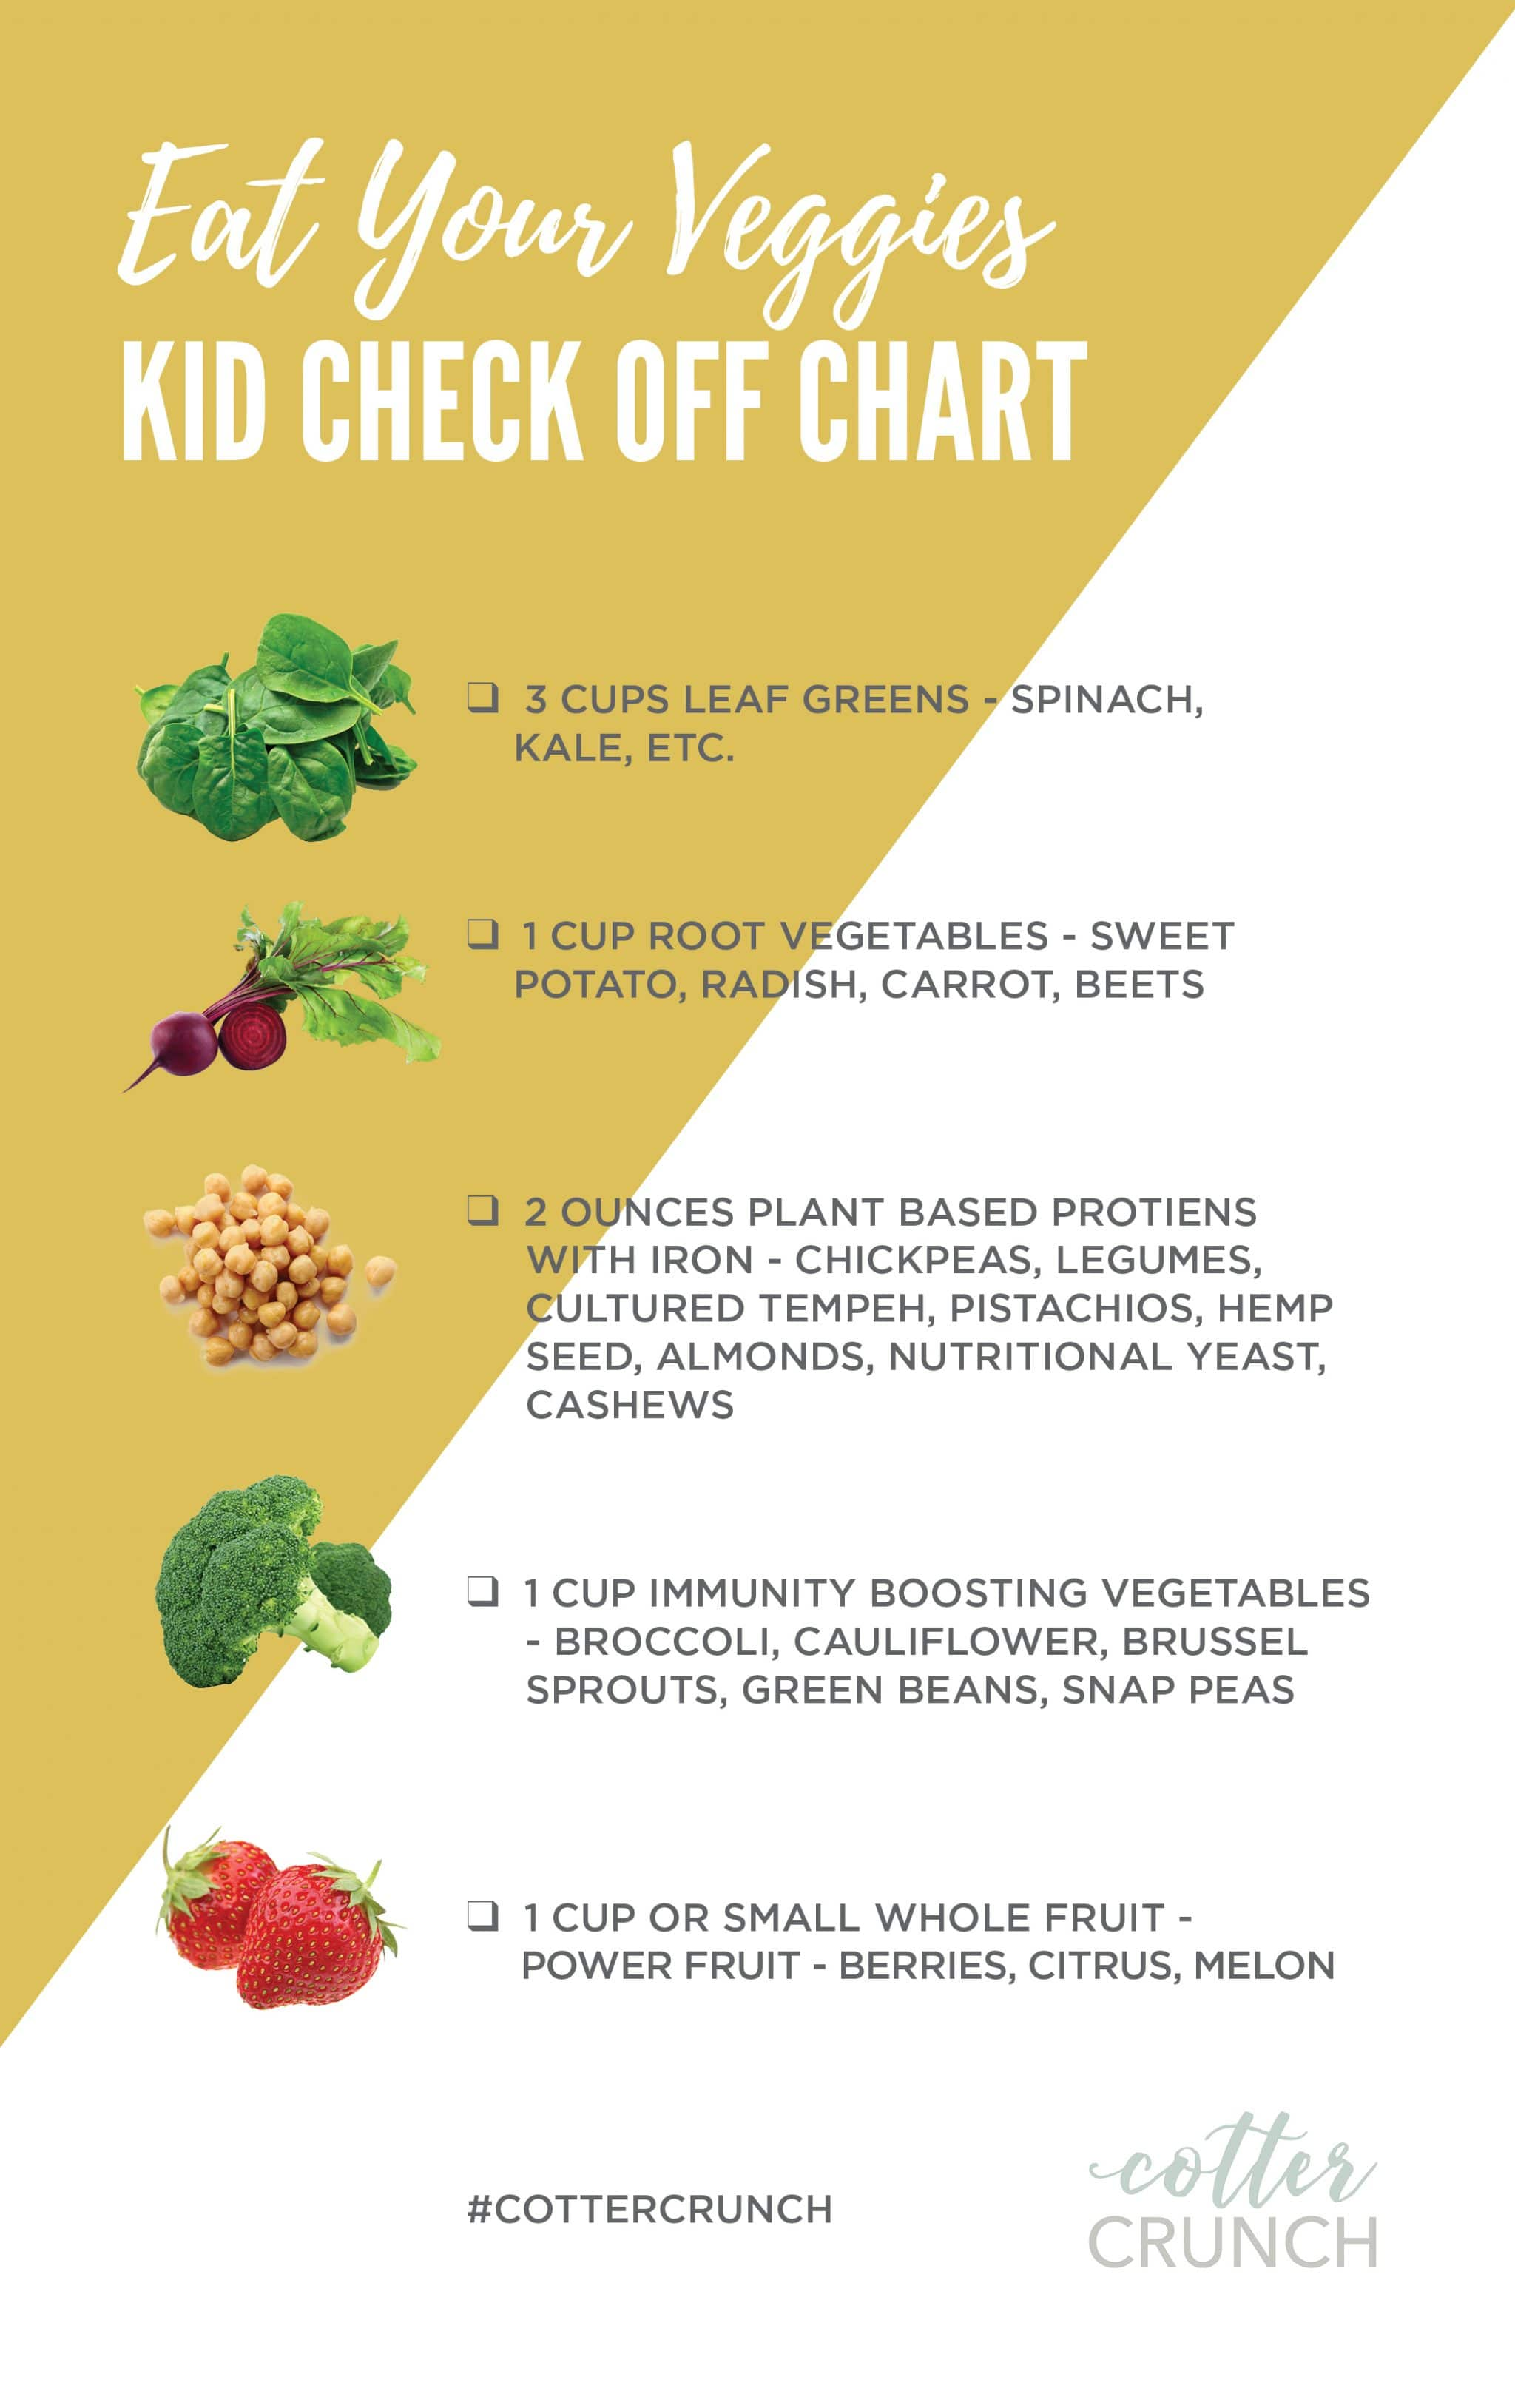 Whole food vegetable challenge chart for kids